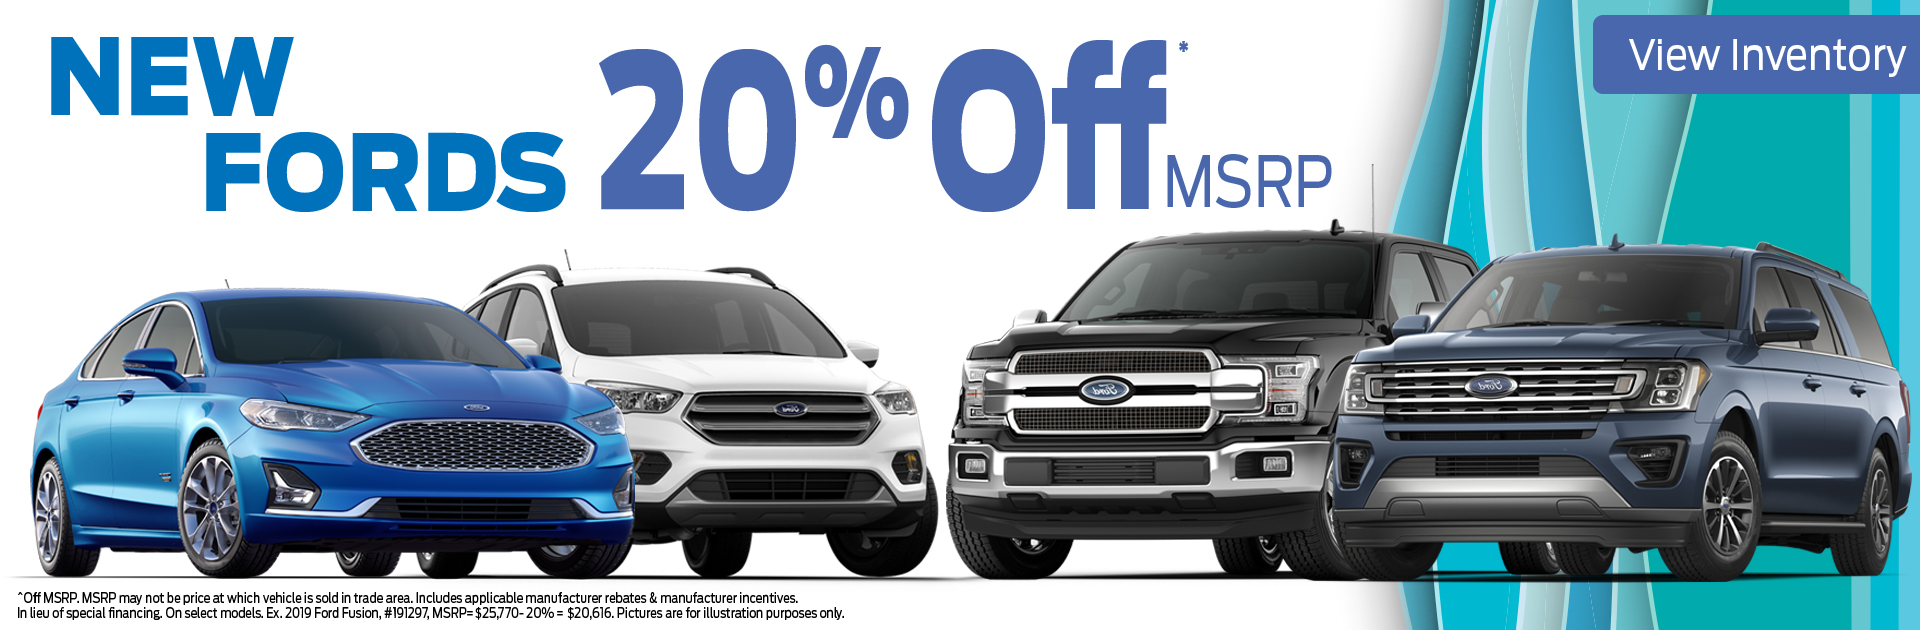 New Fords